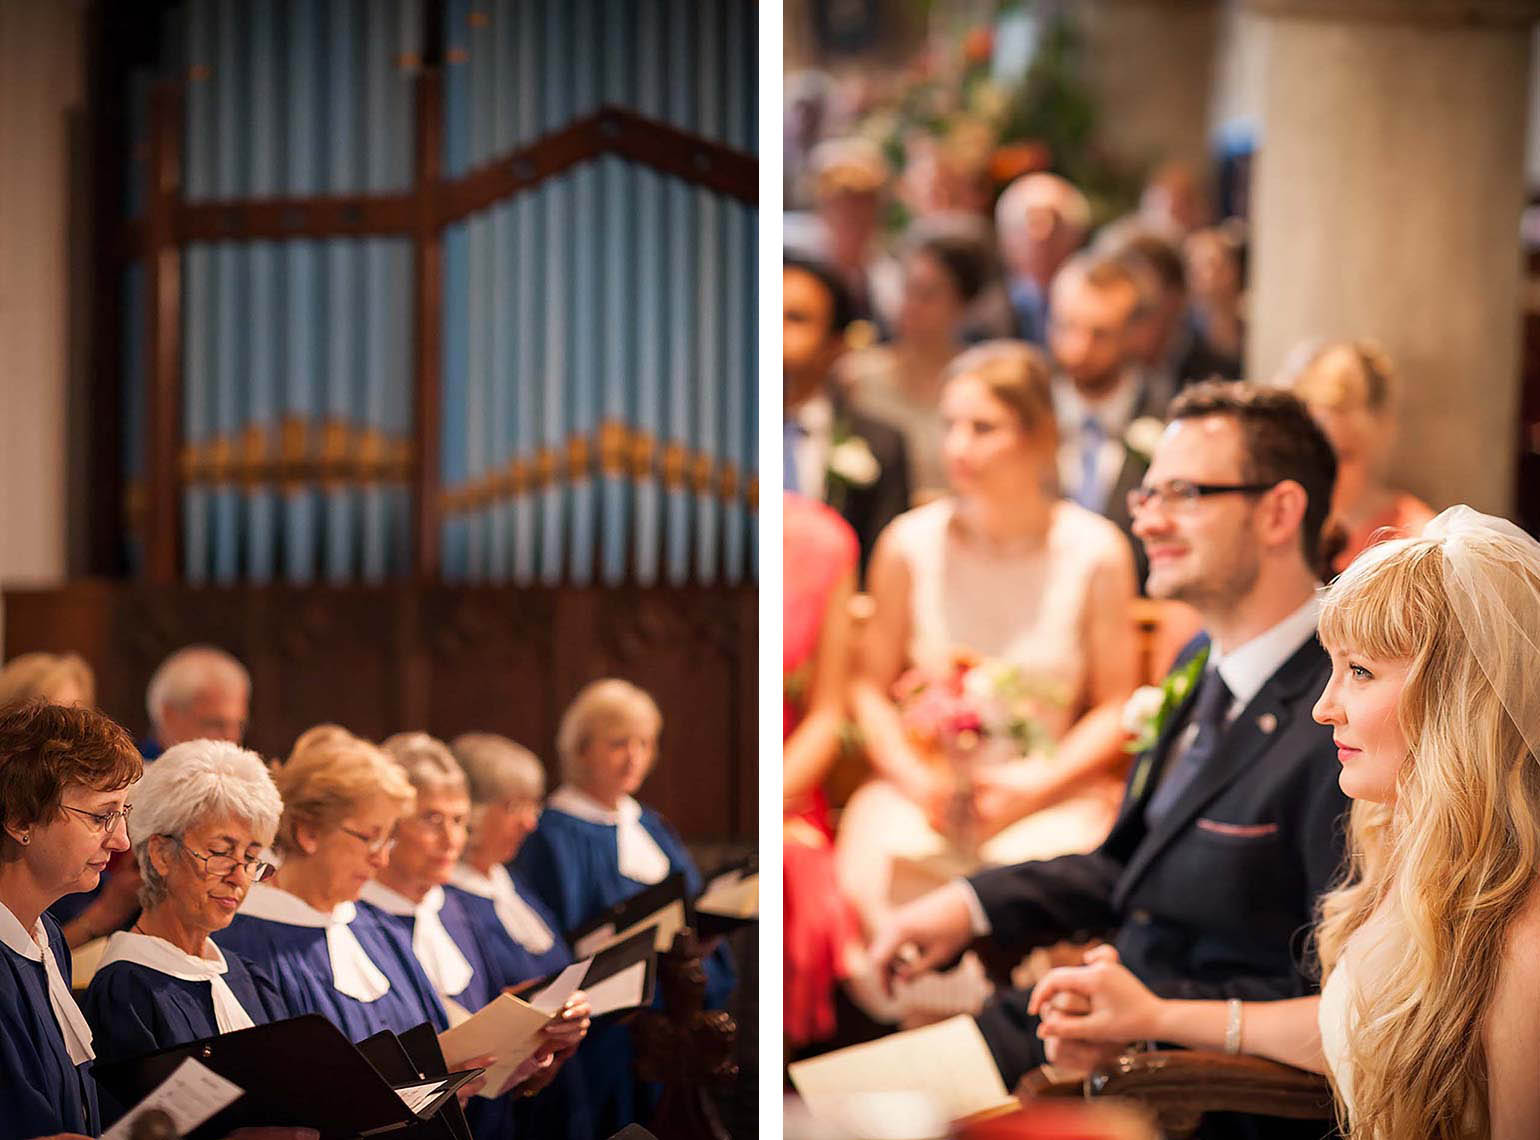 organ-choir-wedding-ceremony-couple-listening-hampshire-reportage-16